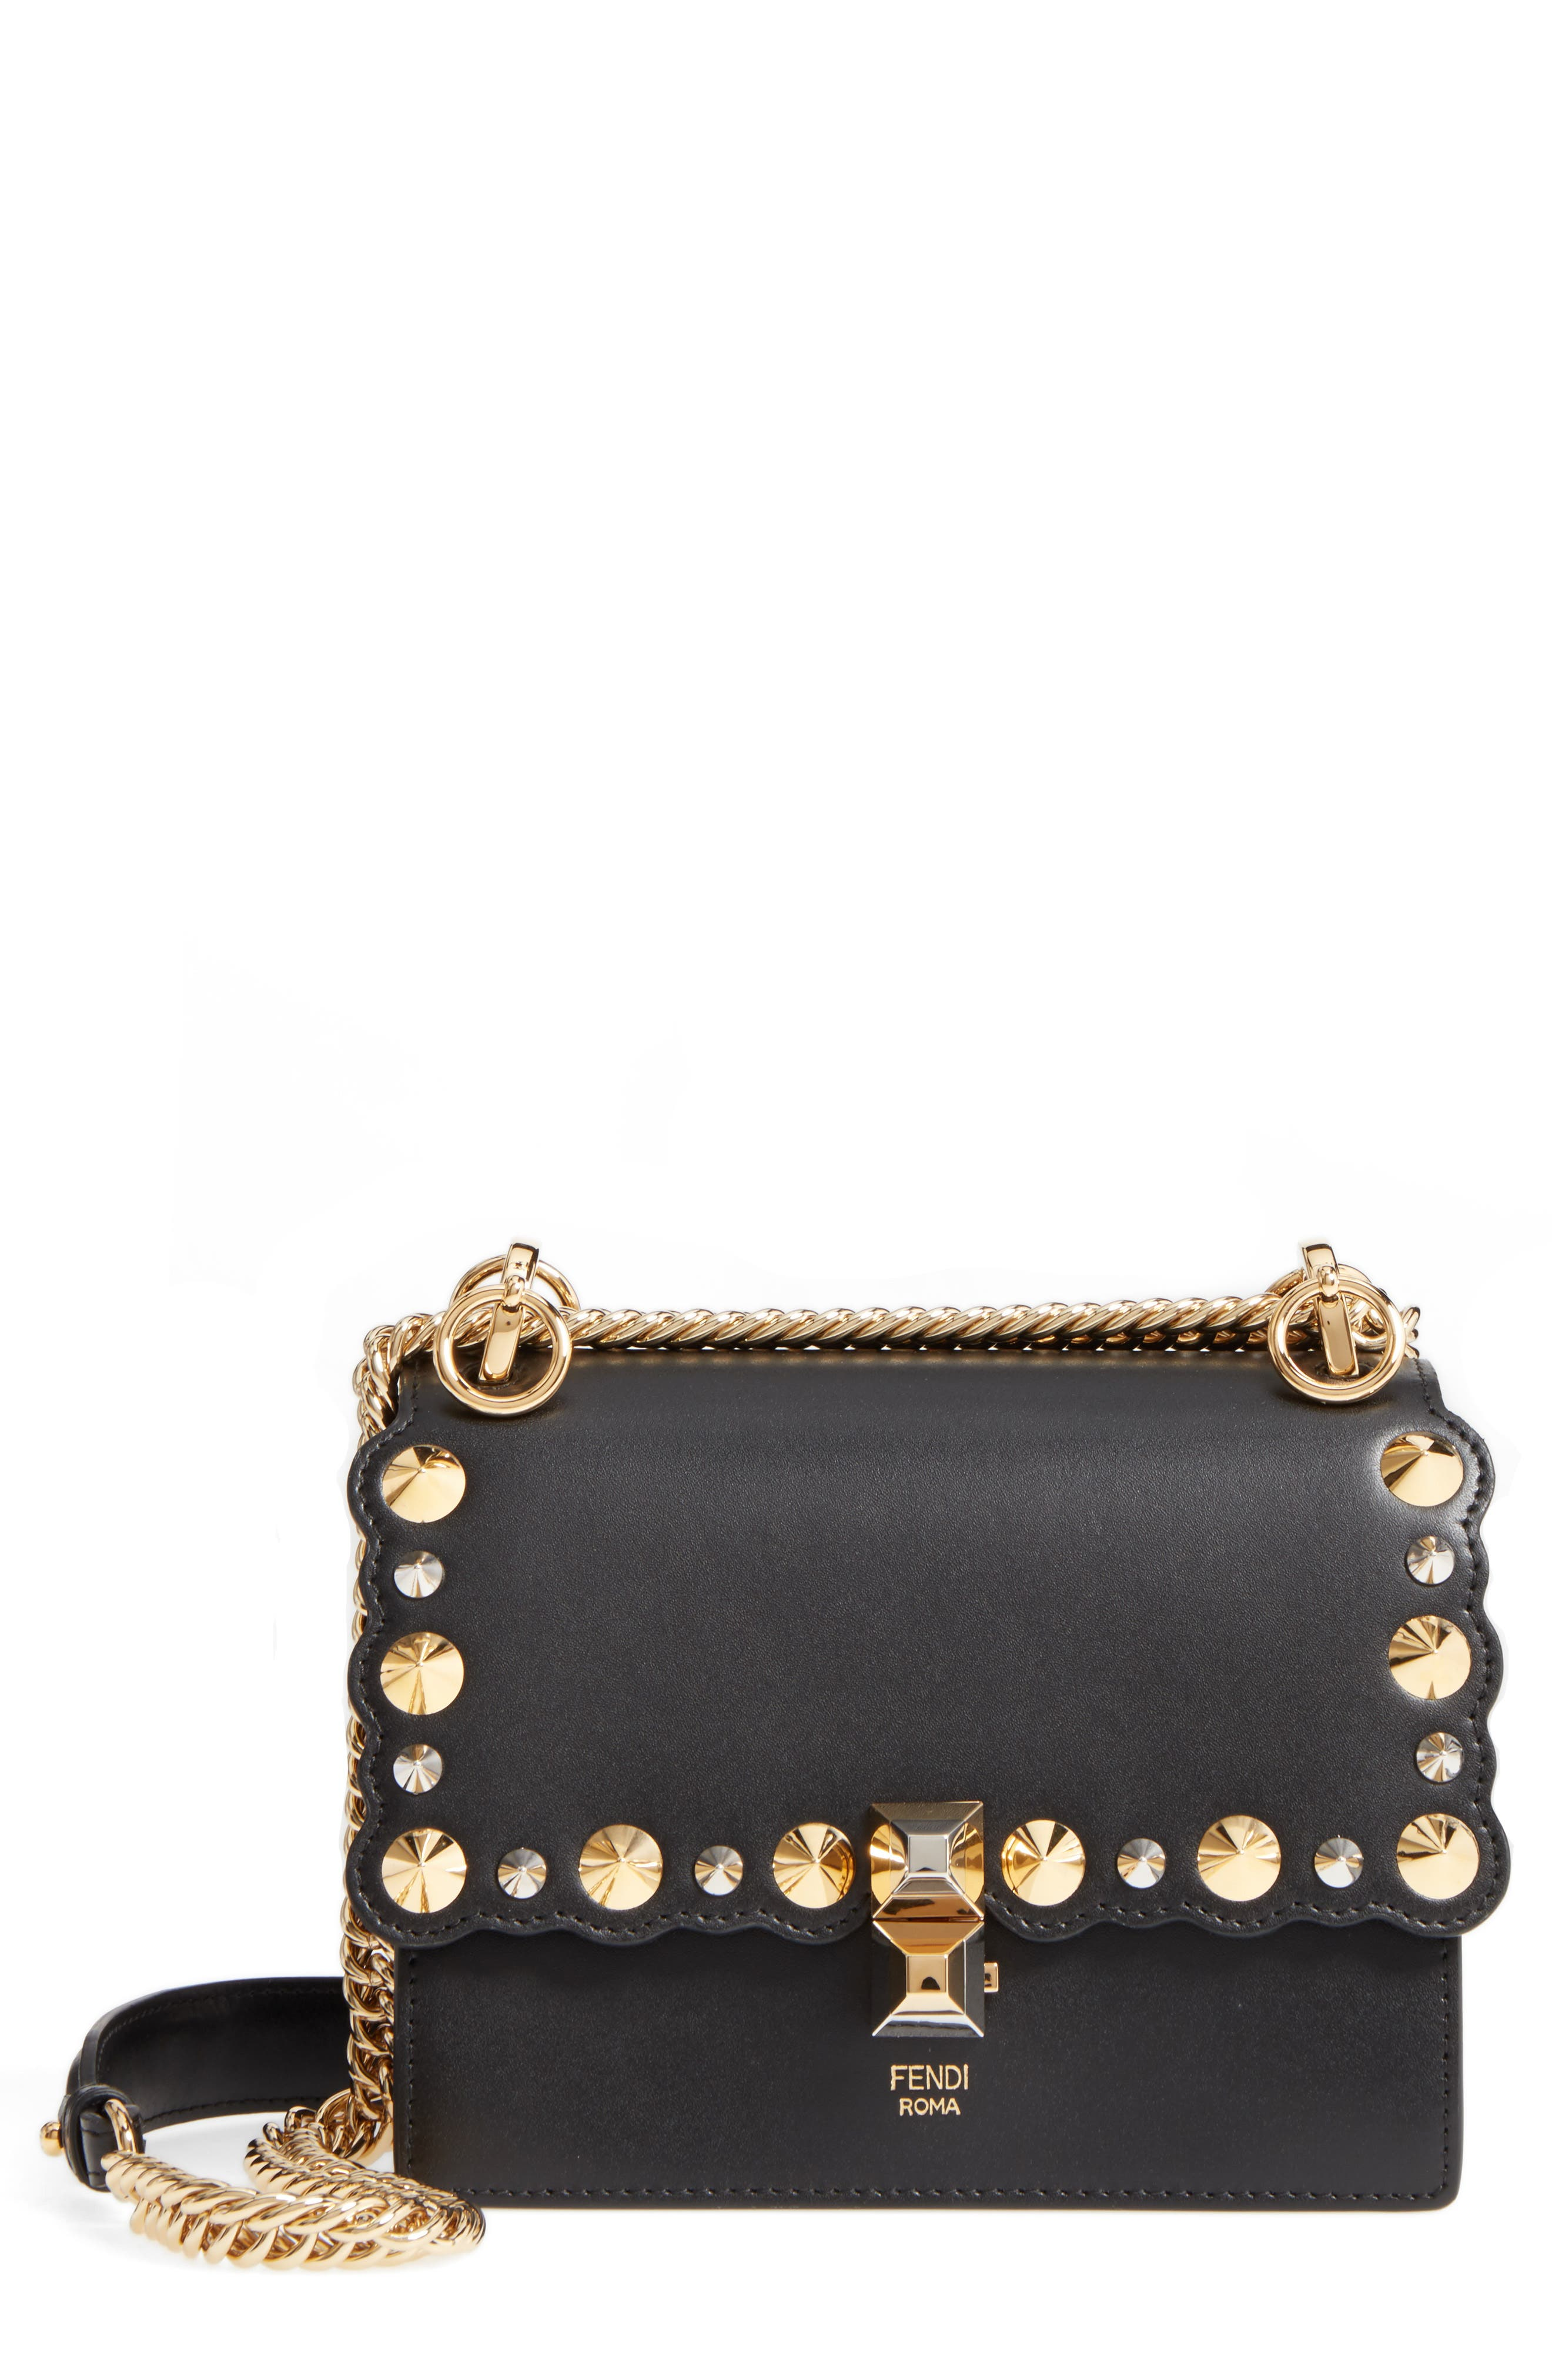 Main Image - Fendi Small Kan I Scallop Leather Shoulder Bag